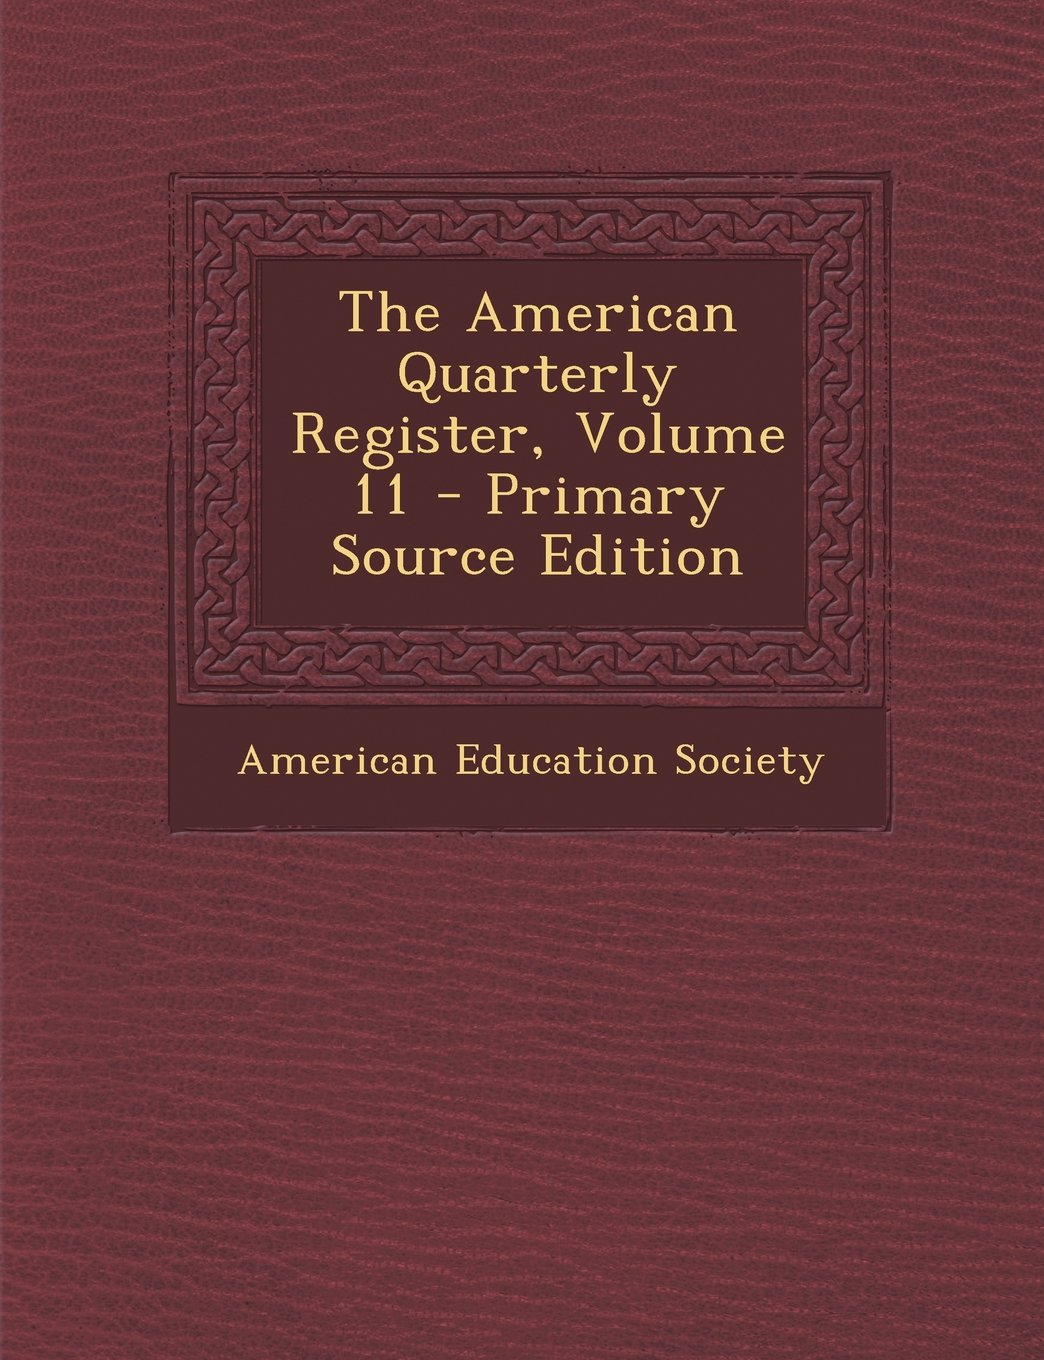 The American Quarterly Register, Volume 11 - Primary Source Edition ebook